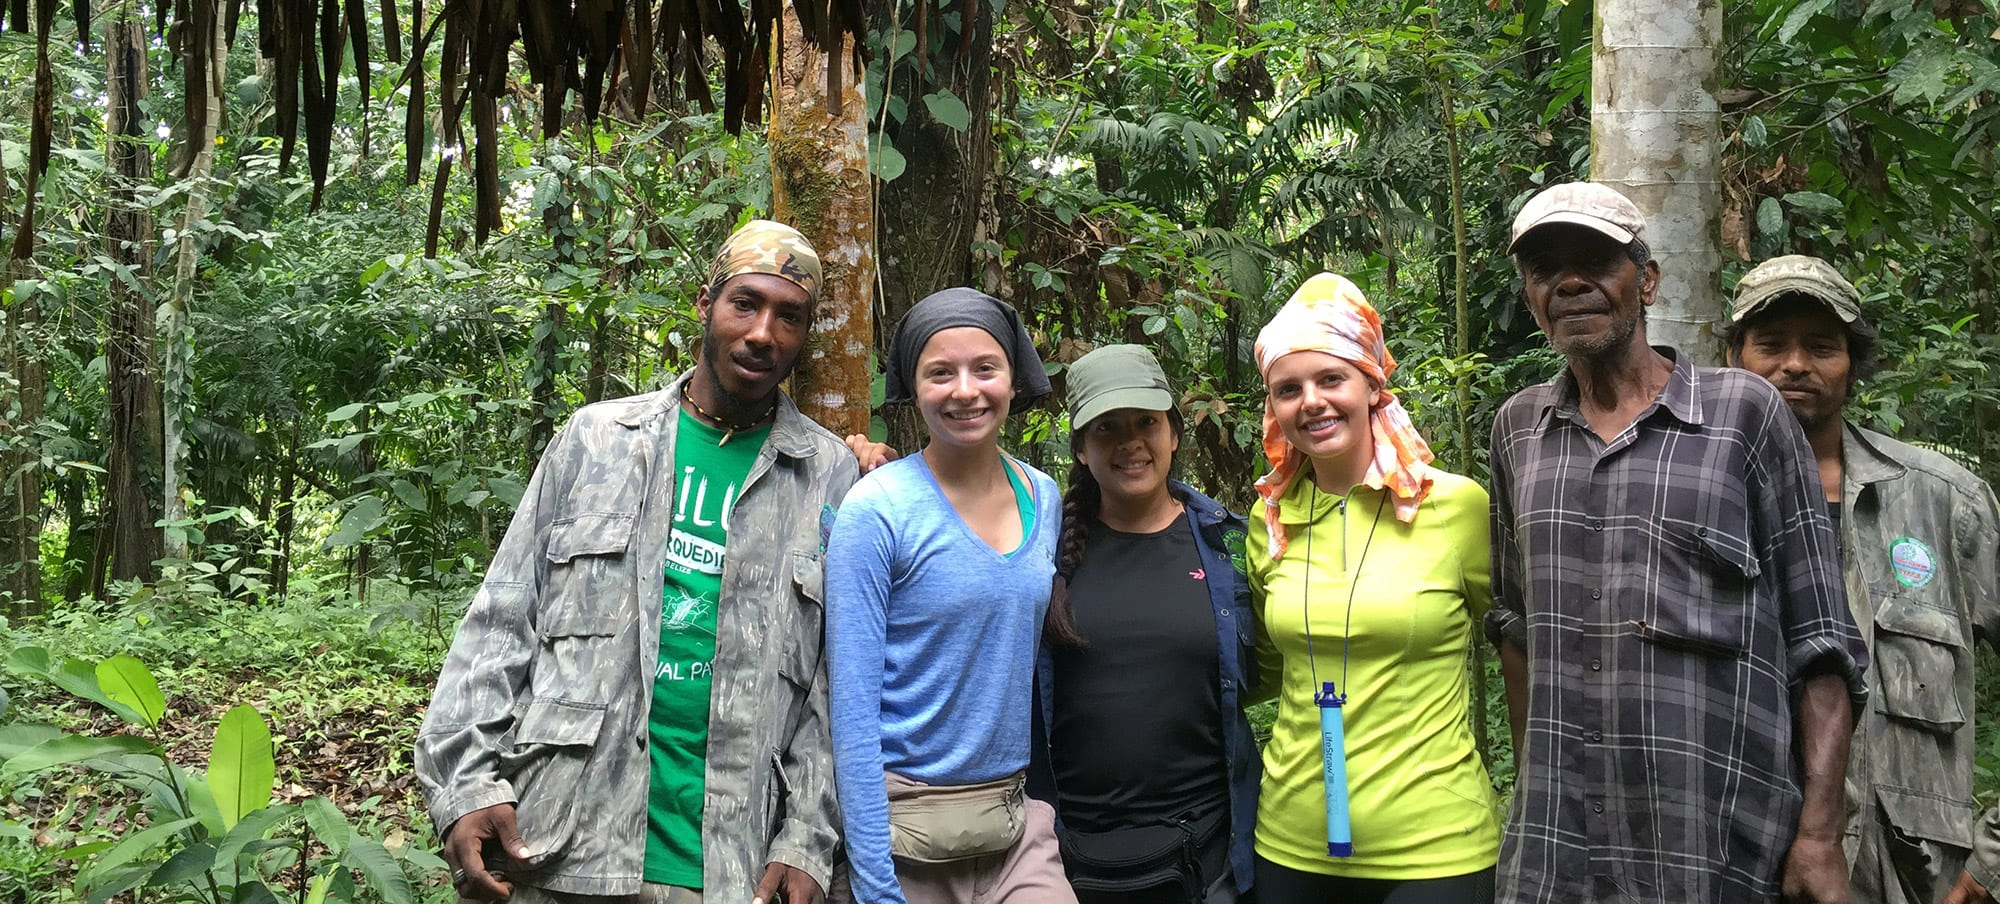 Redding and Kelsey Johnson with their guides at a jungle campsite